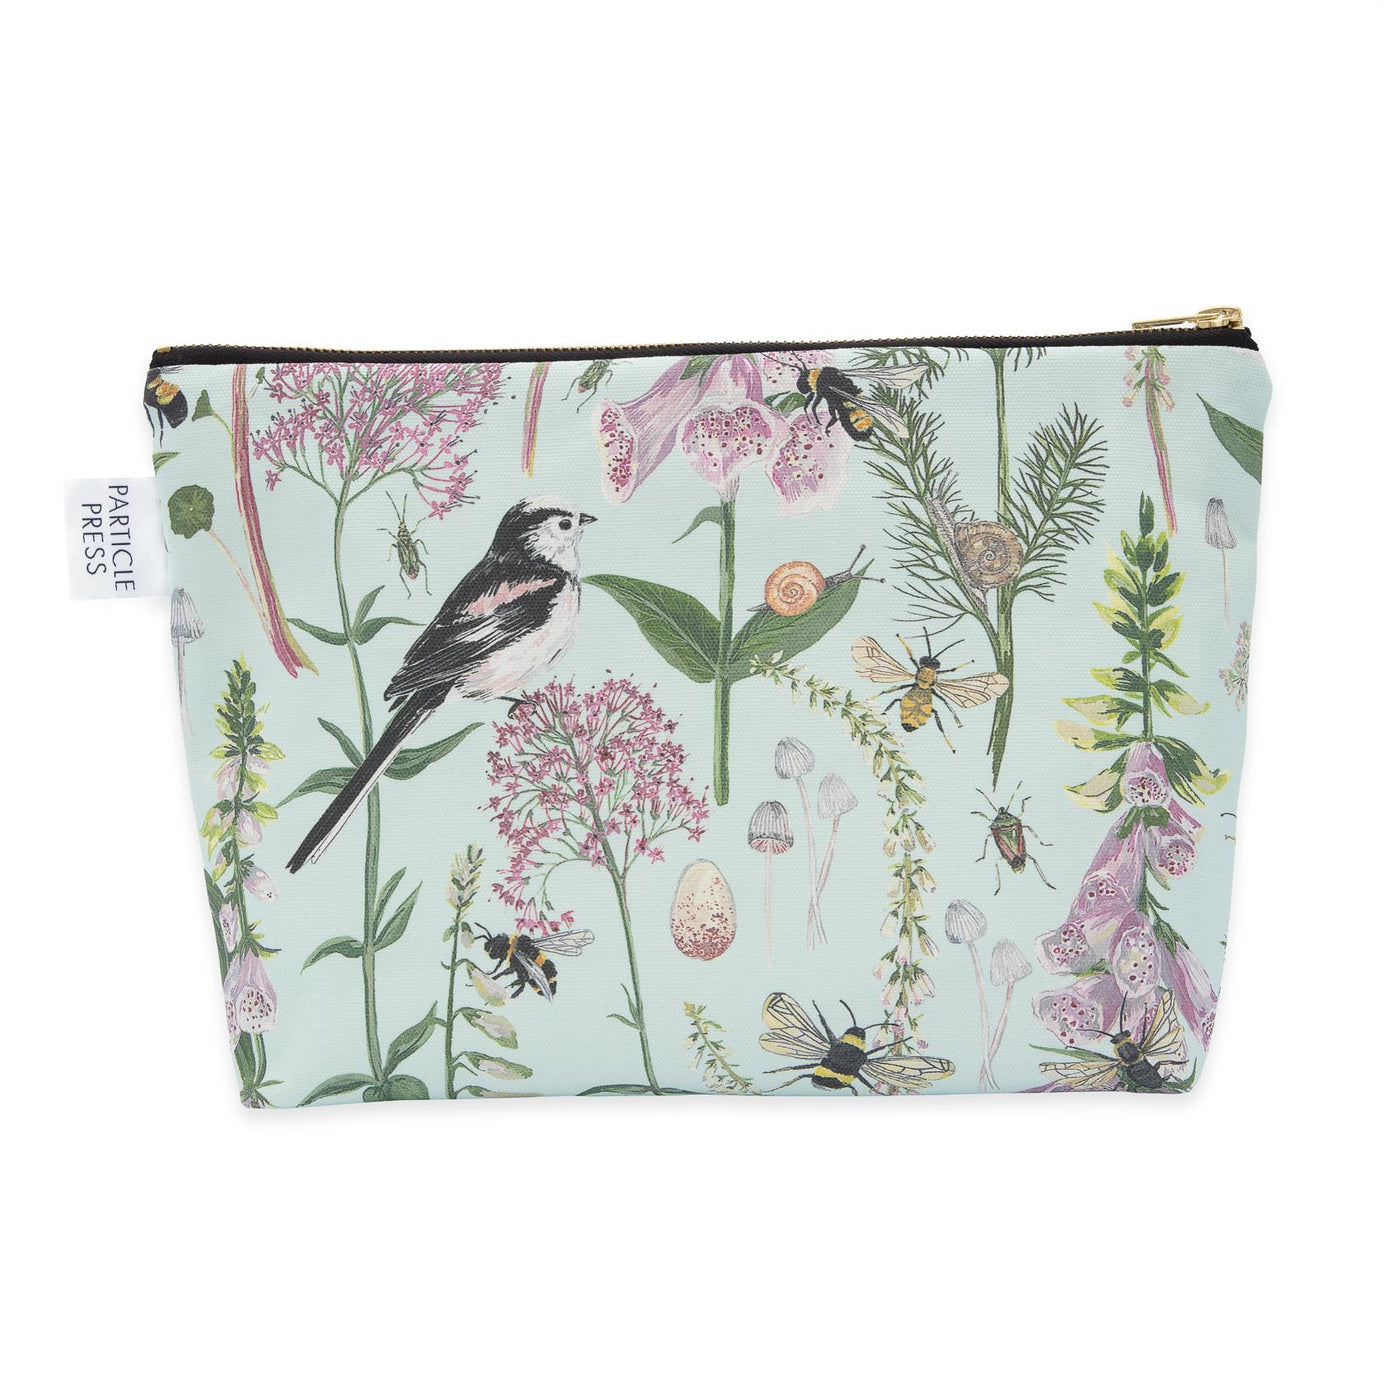 Longtail and Foxglove Large Wash Bag - Mint